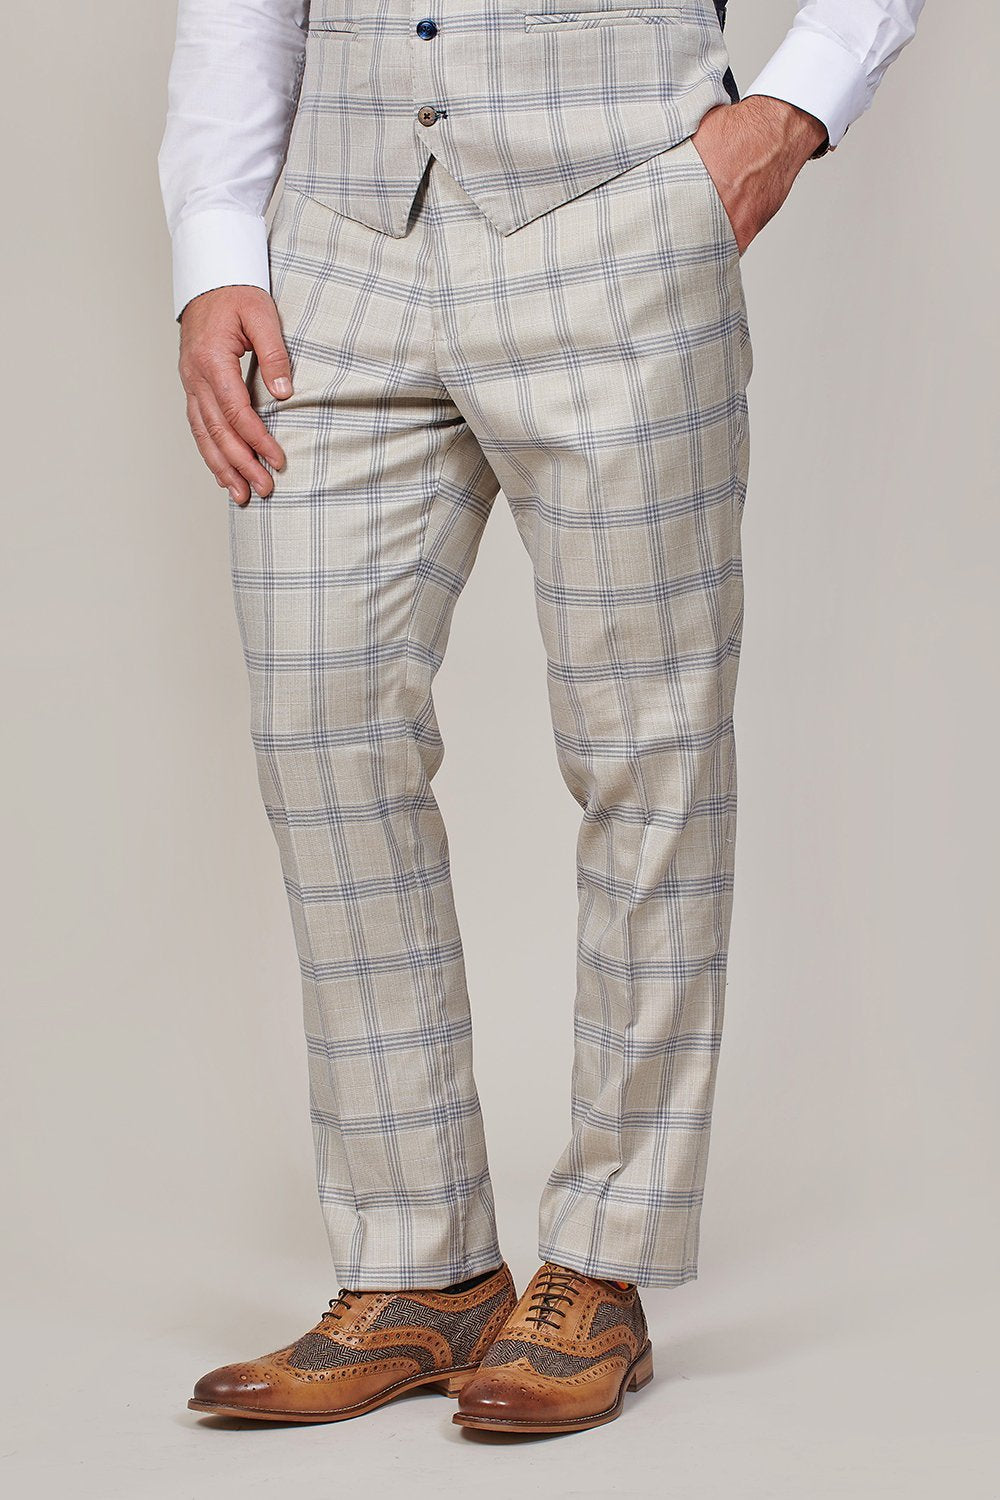 Marc Darcy Marc Darcy Buxton Stone Check Trousers £24.99